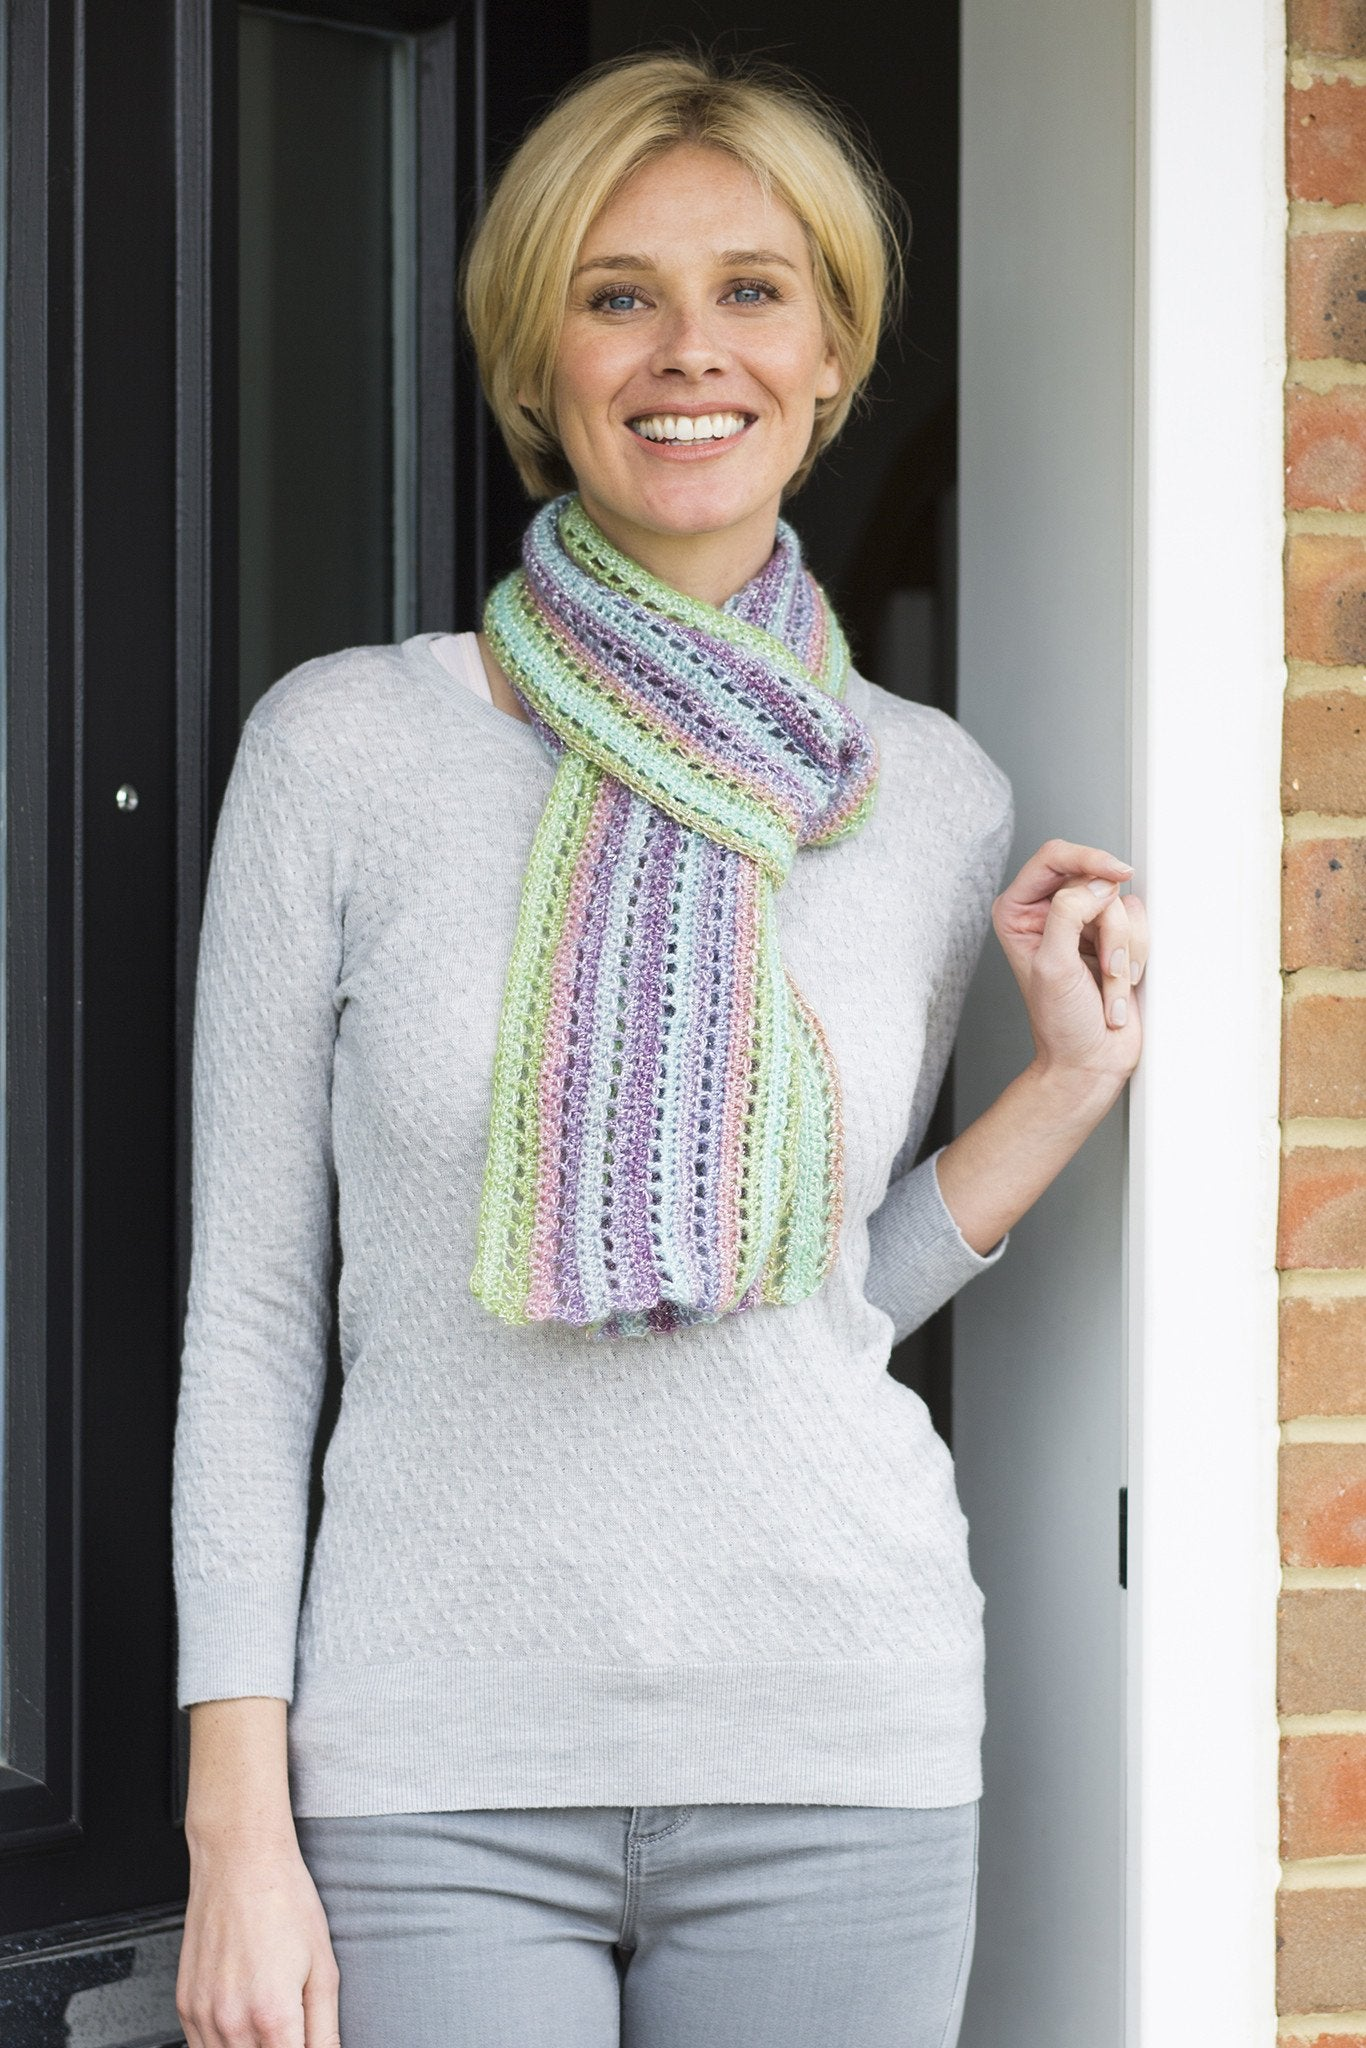 Ladies Lace Striped Scarf Crochet Pattern – The Knitting Network